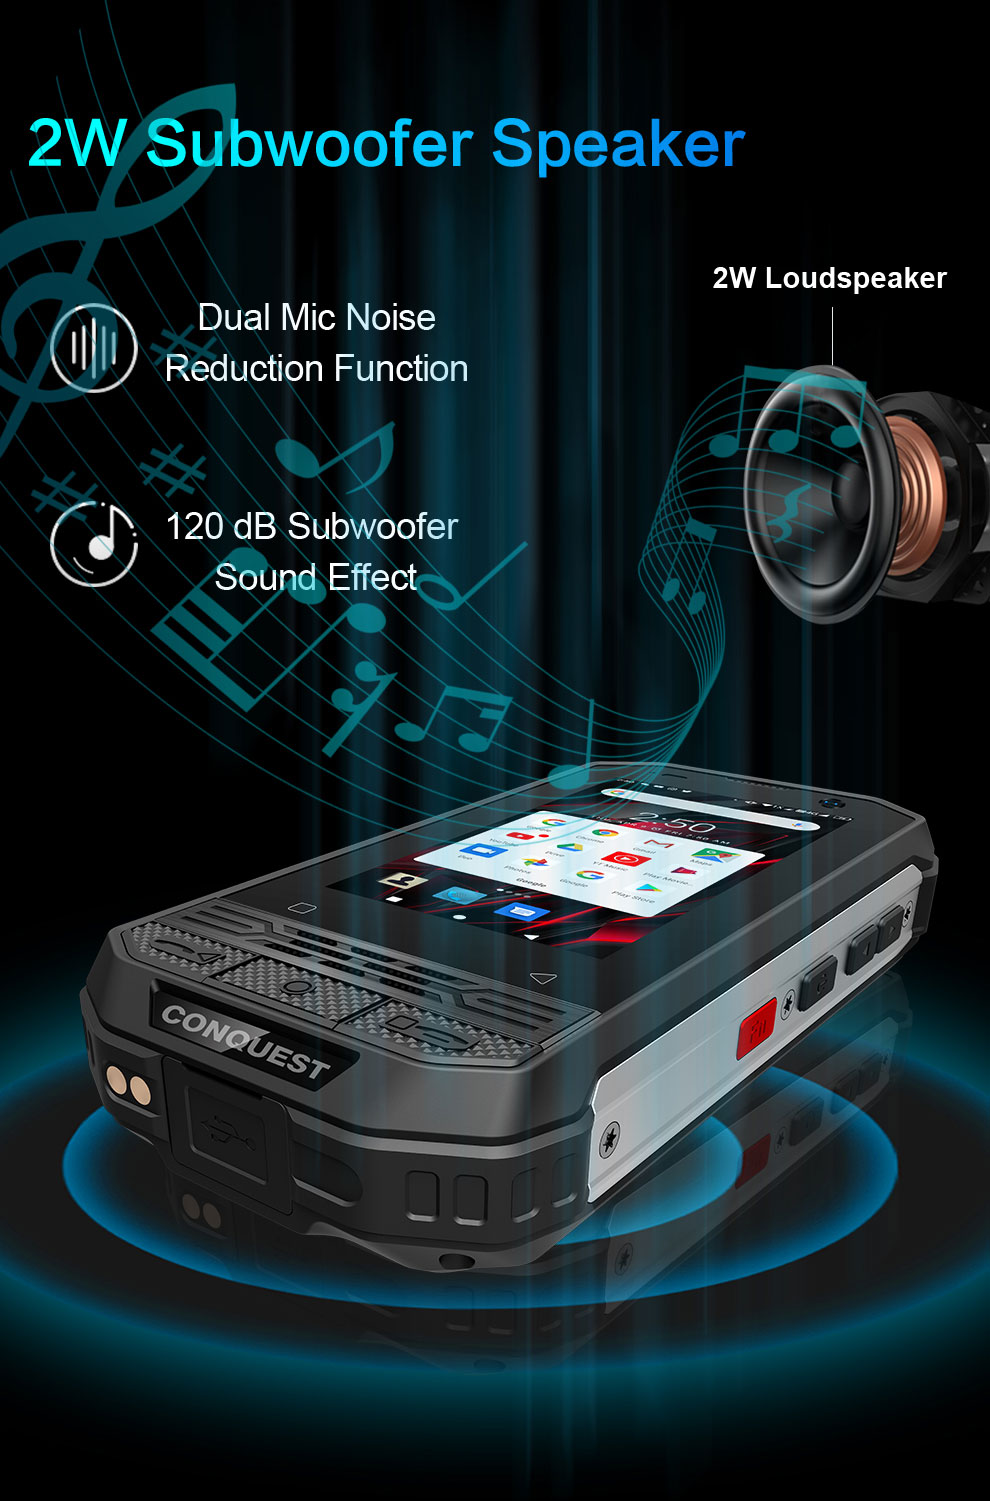 Conquest F2 rugged phone for sale